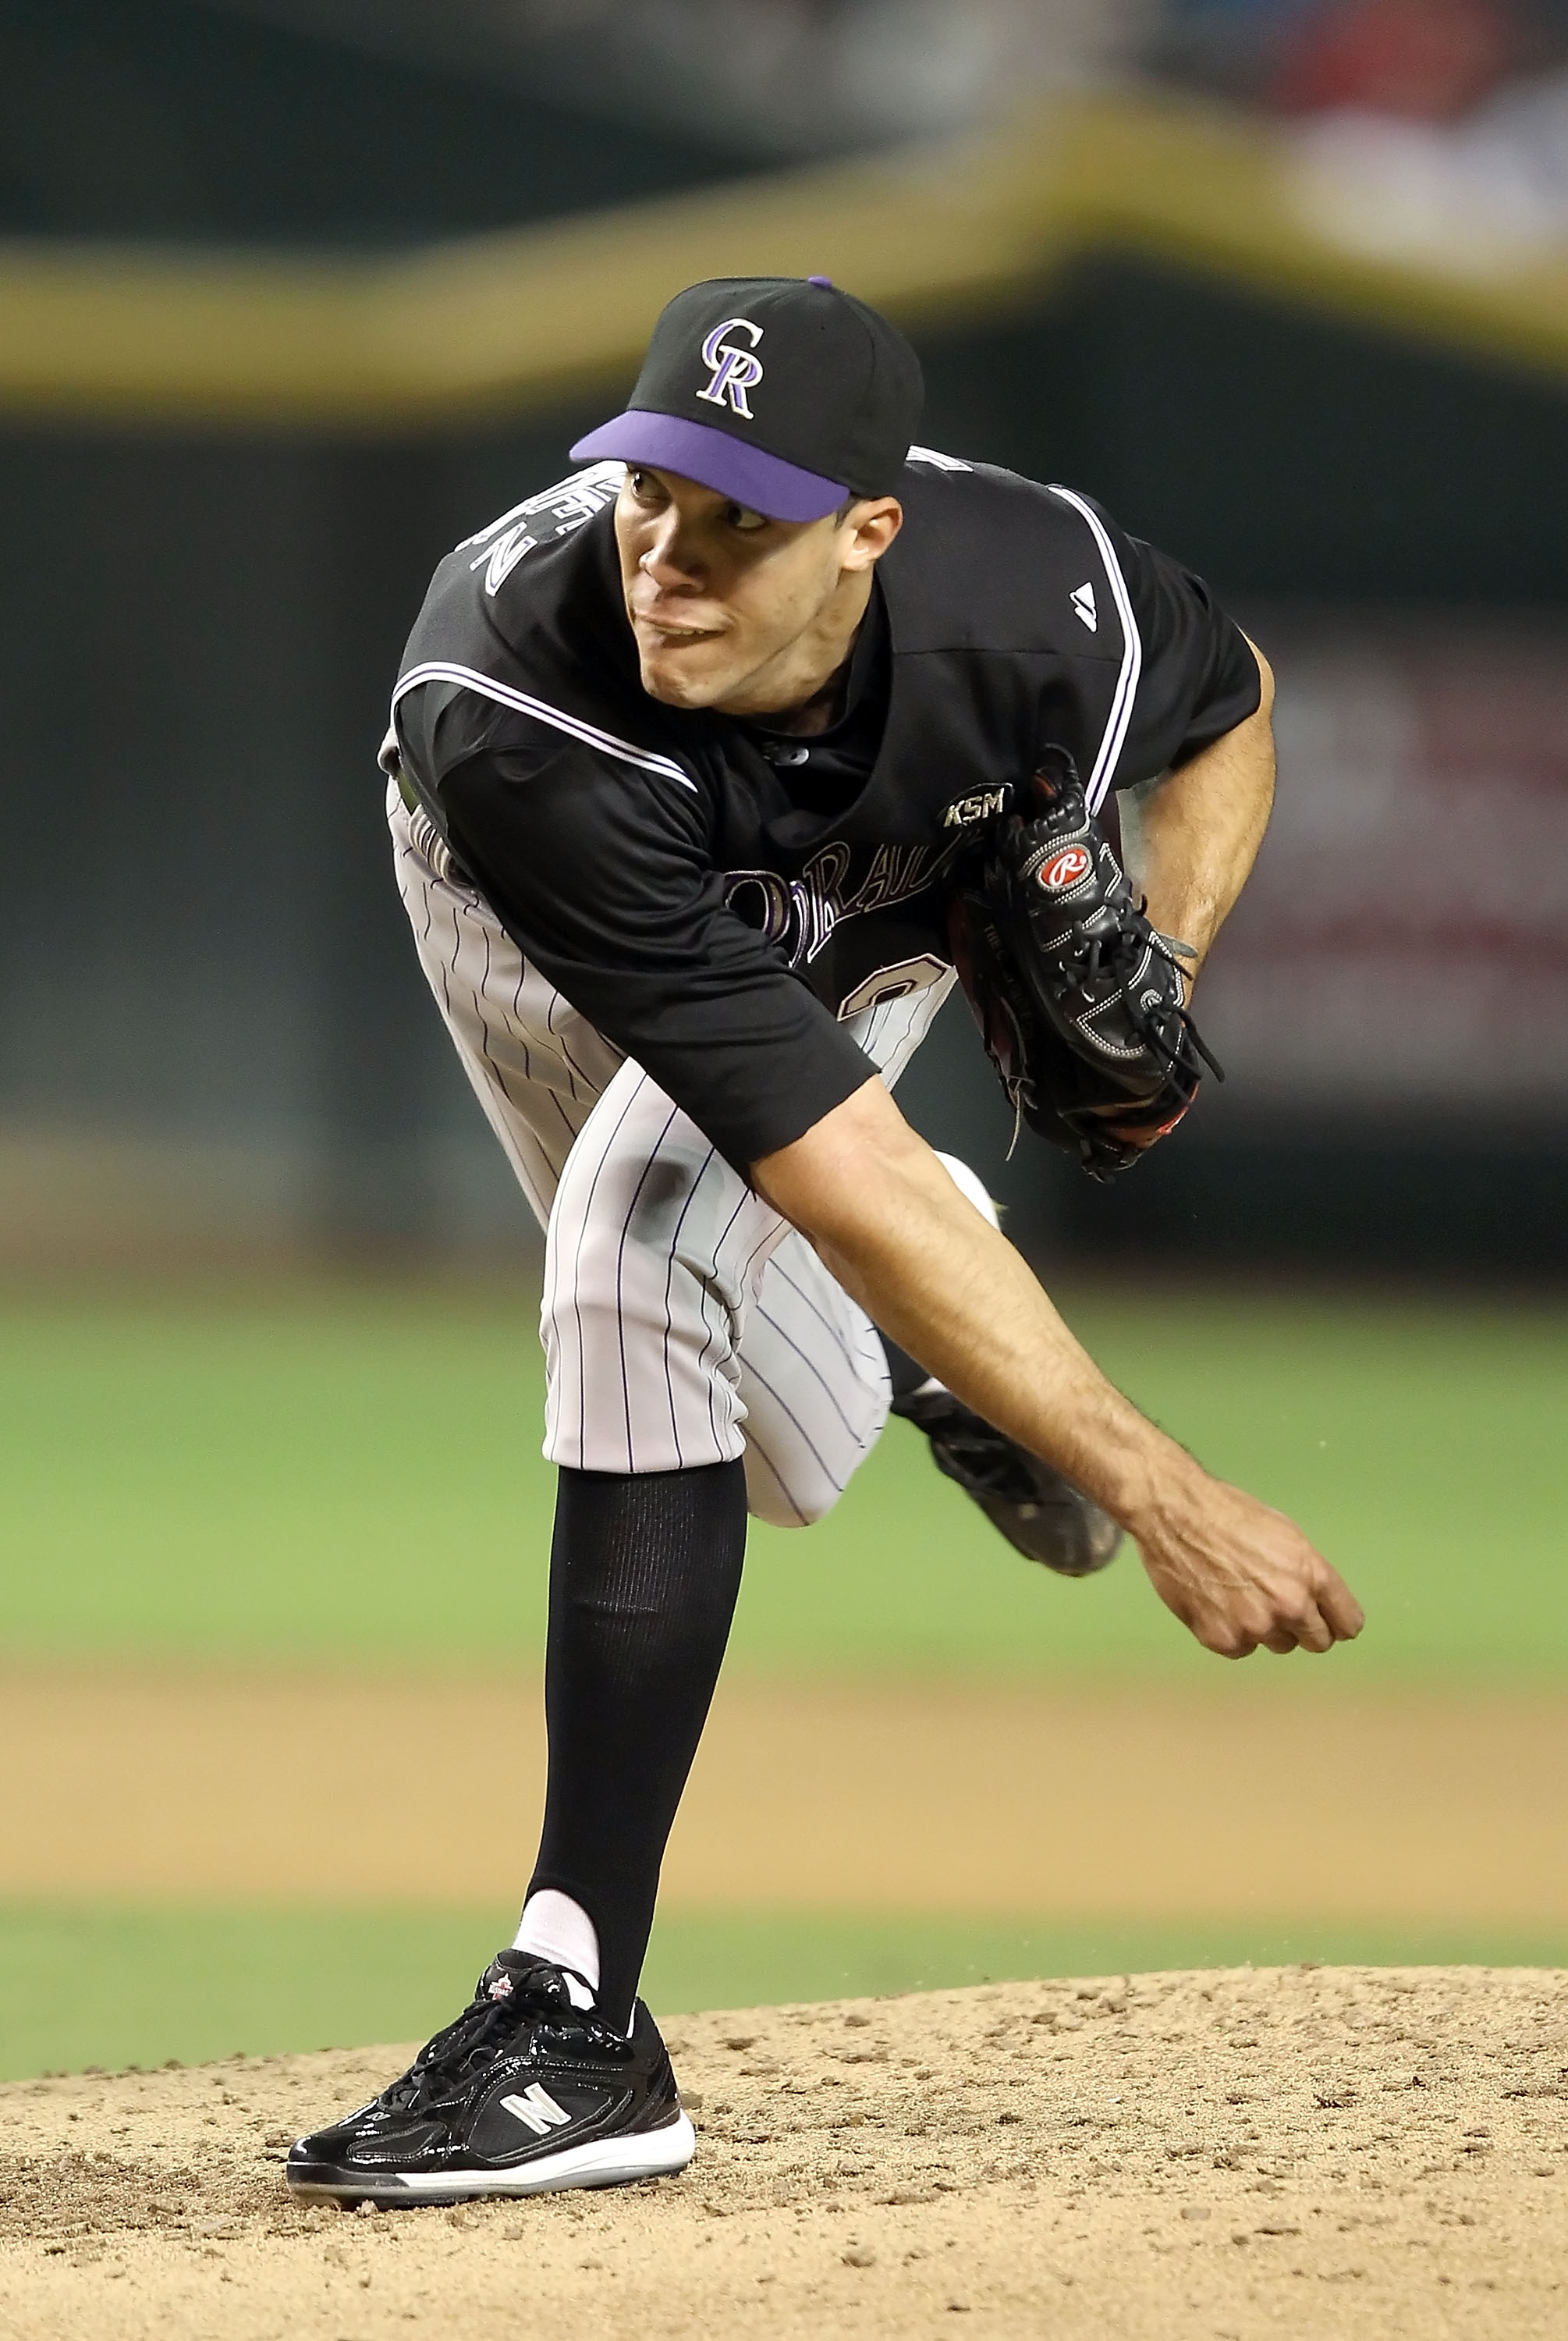 PHOENIX - SEPTEMBER 22:  Starting pitcher Ubaldo Jimenez #38 of the Colorado Rockies pitches against the Arizona Diamondbacks during the Major League Baseball game at Chase Field on September 22, 2010 in Phoenix, Arizona.  (Photo by Christian Petersen/Get